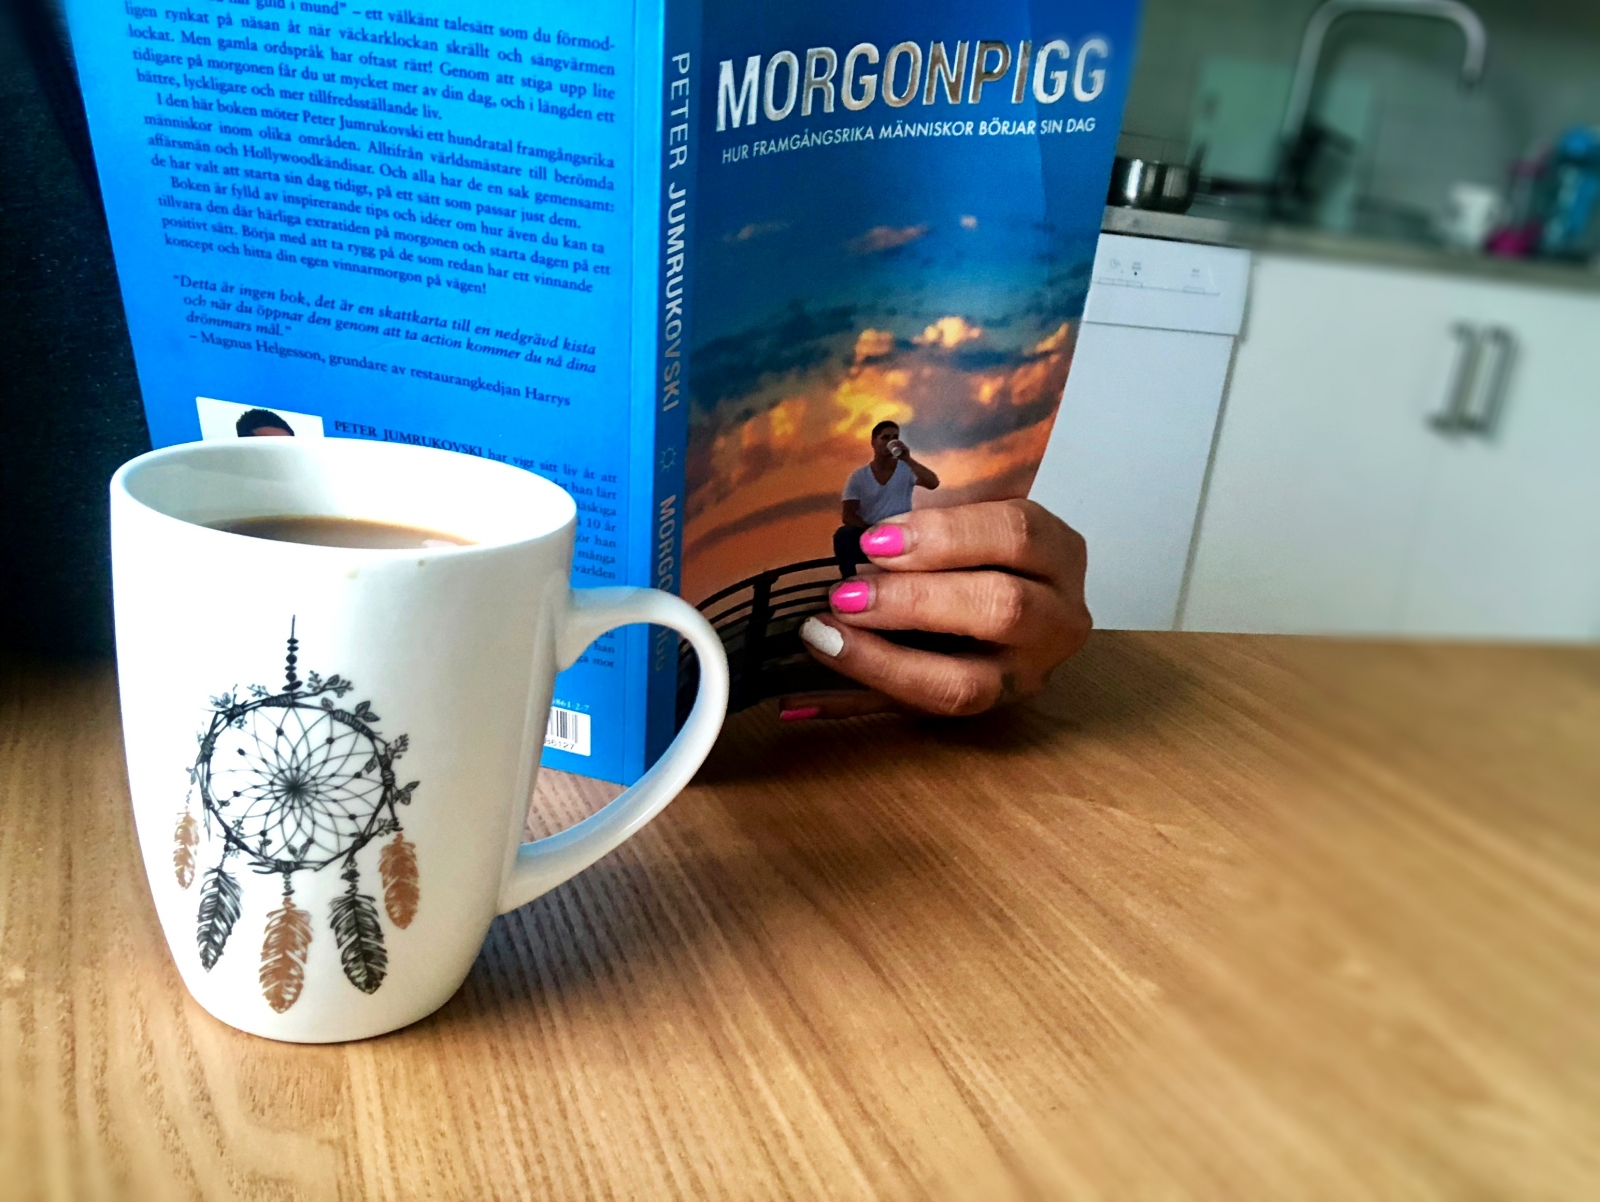 dreams-goals-livet